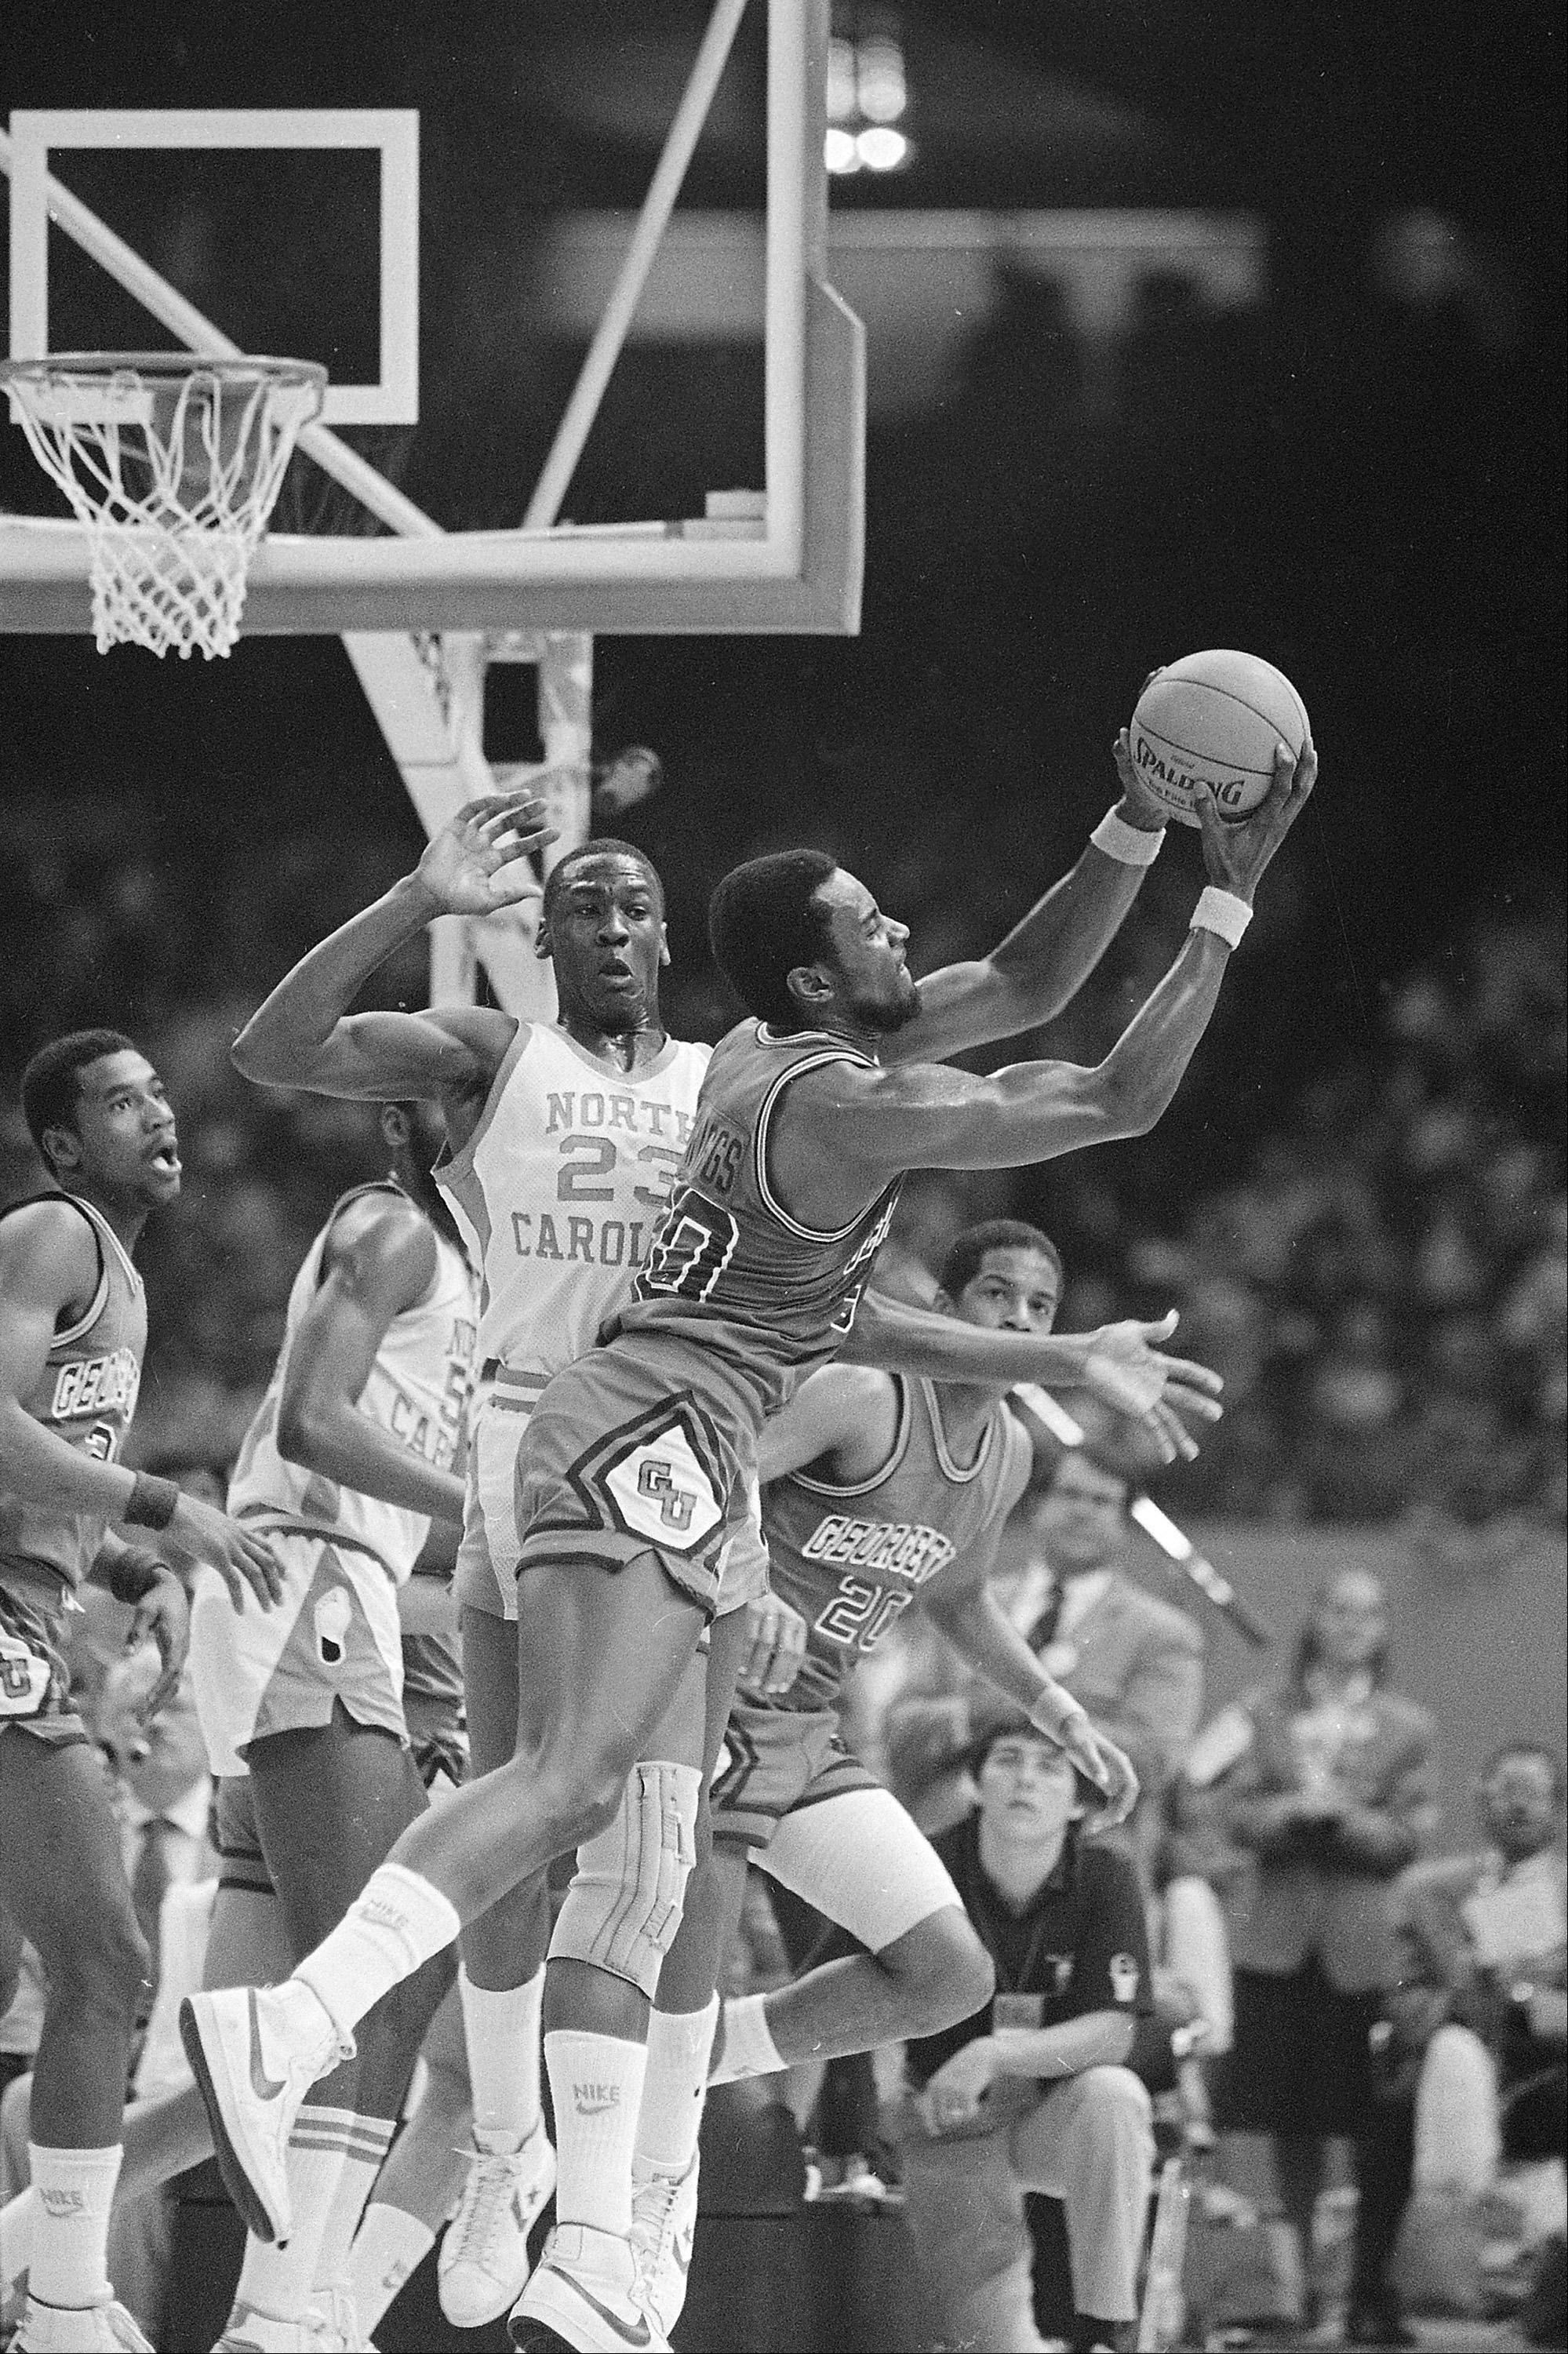 Georgetown's Ed Springs takes a rebound away from North Carolina's Michael Jordan (23) during the NCAA championship at the Superdome in New Orleans, March 30, 1982. Jordan scored 16 points and the winning basket as the Tar Heels defeated the Hoyas, 63-62.